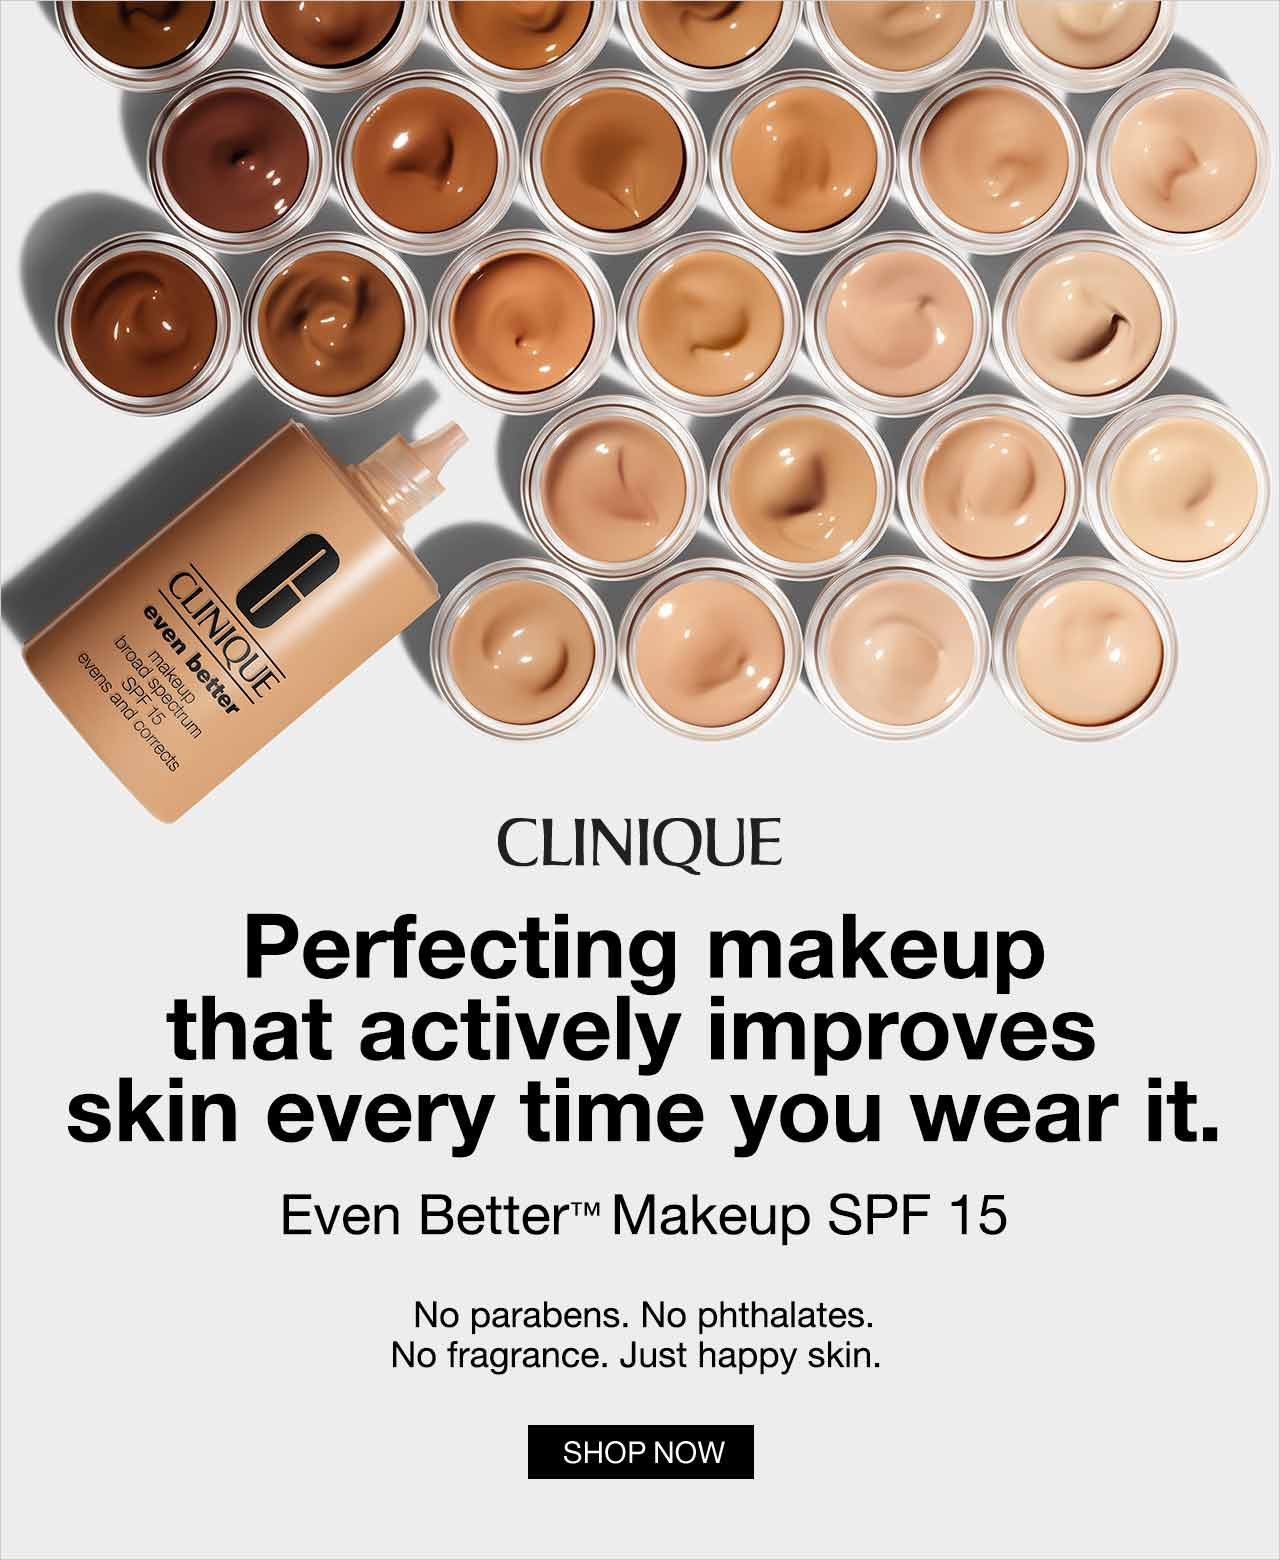 Clinique Even Better Makeup SPF 15 Shop now